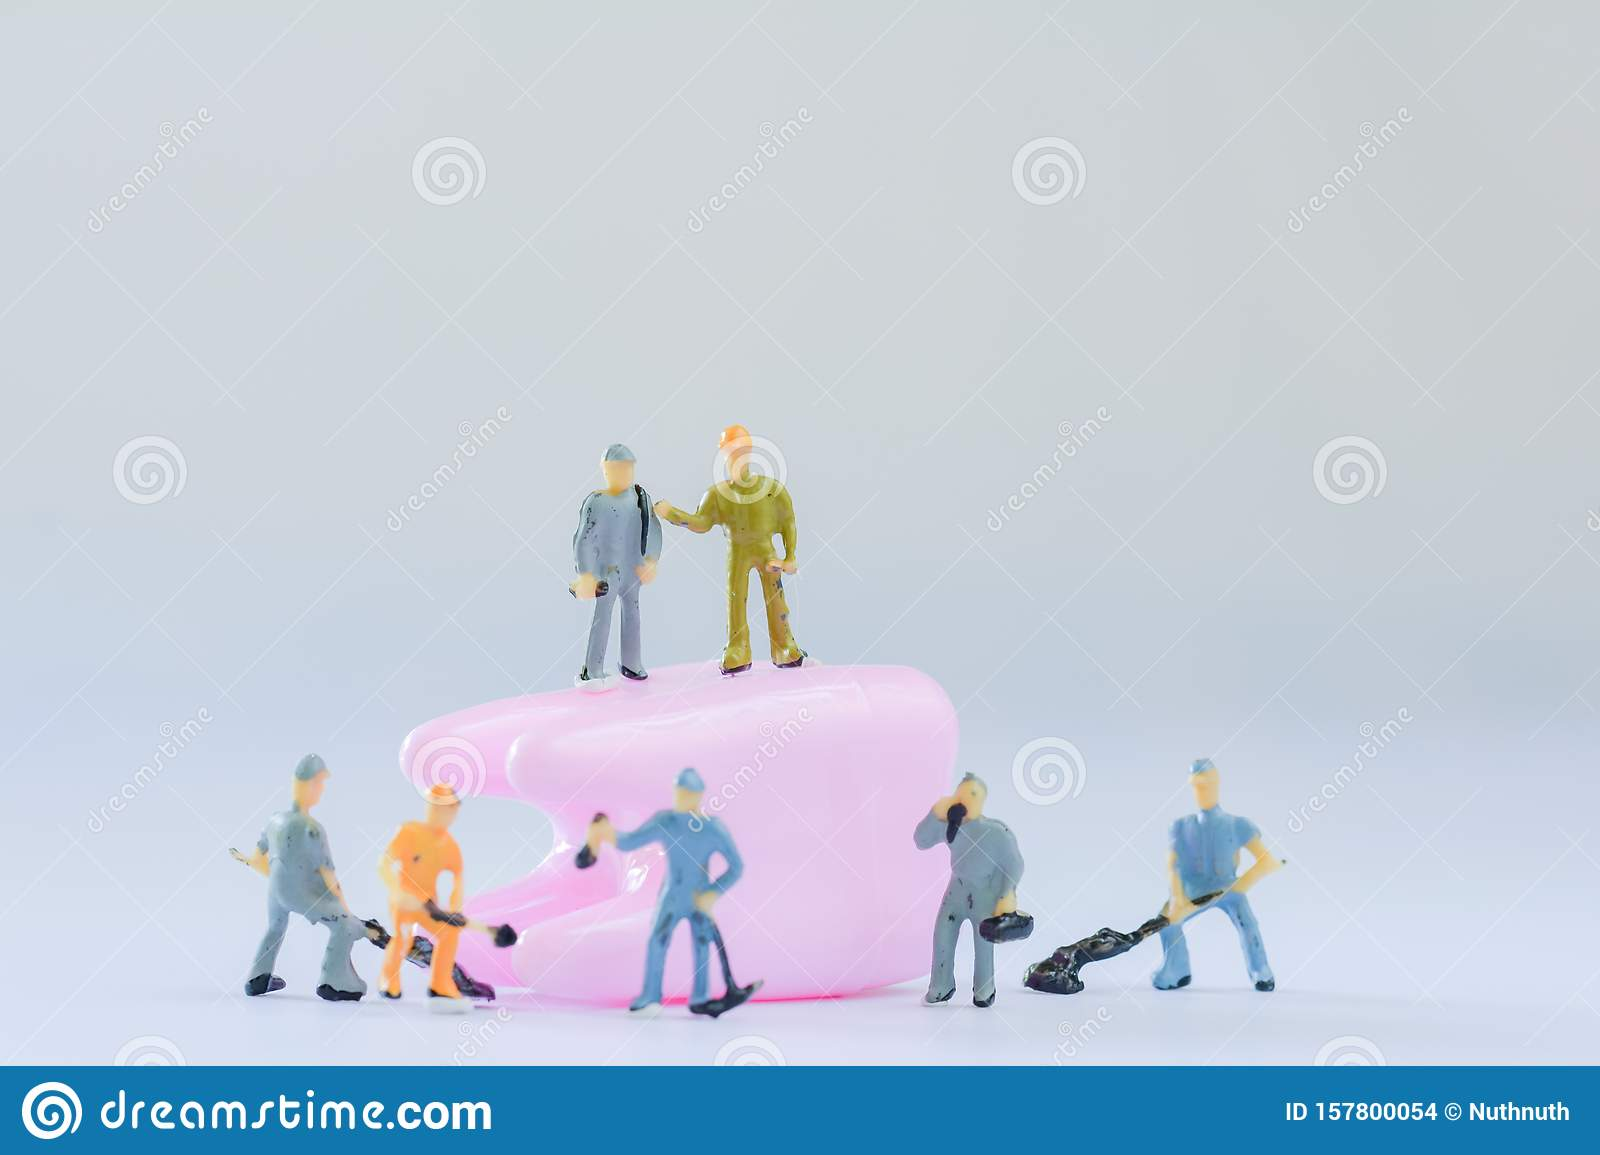 Miniature people, small model human figure clean pink tooth with copy space. Medical and dental concept. Team work on dental care.